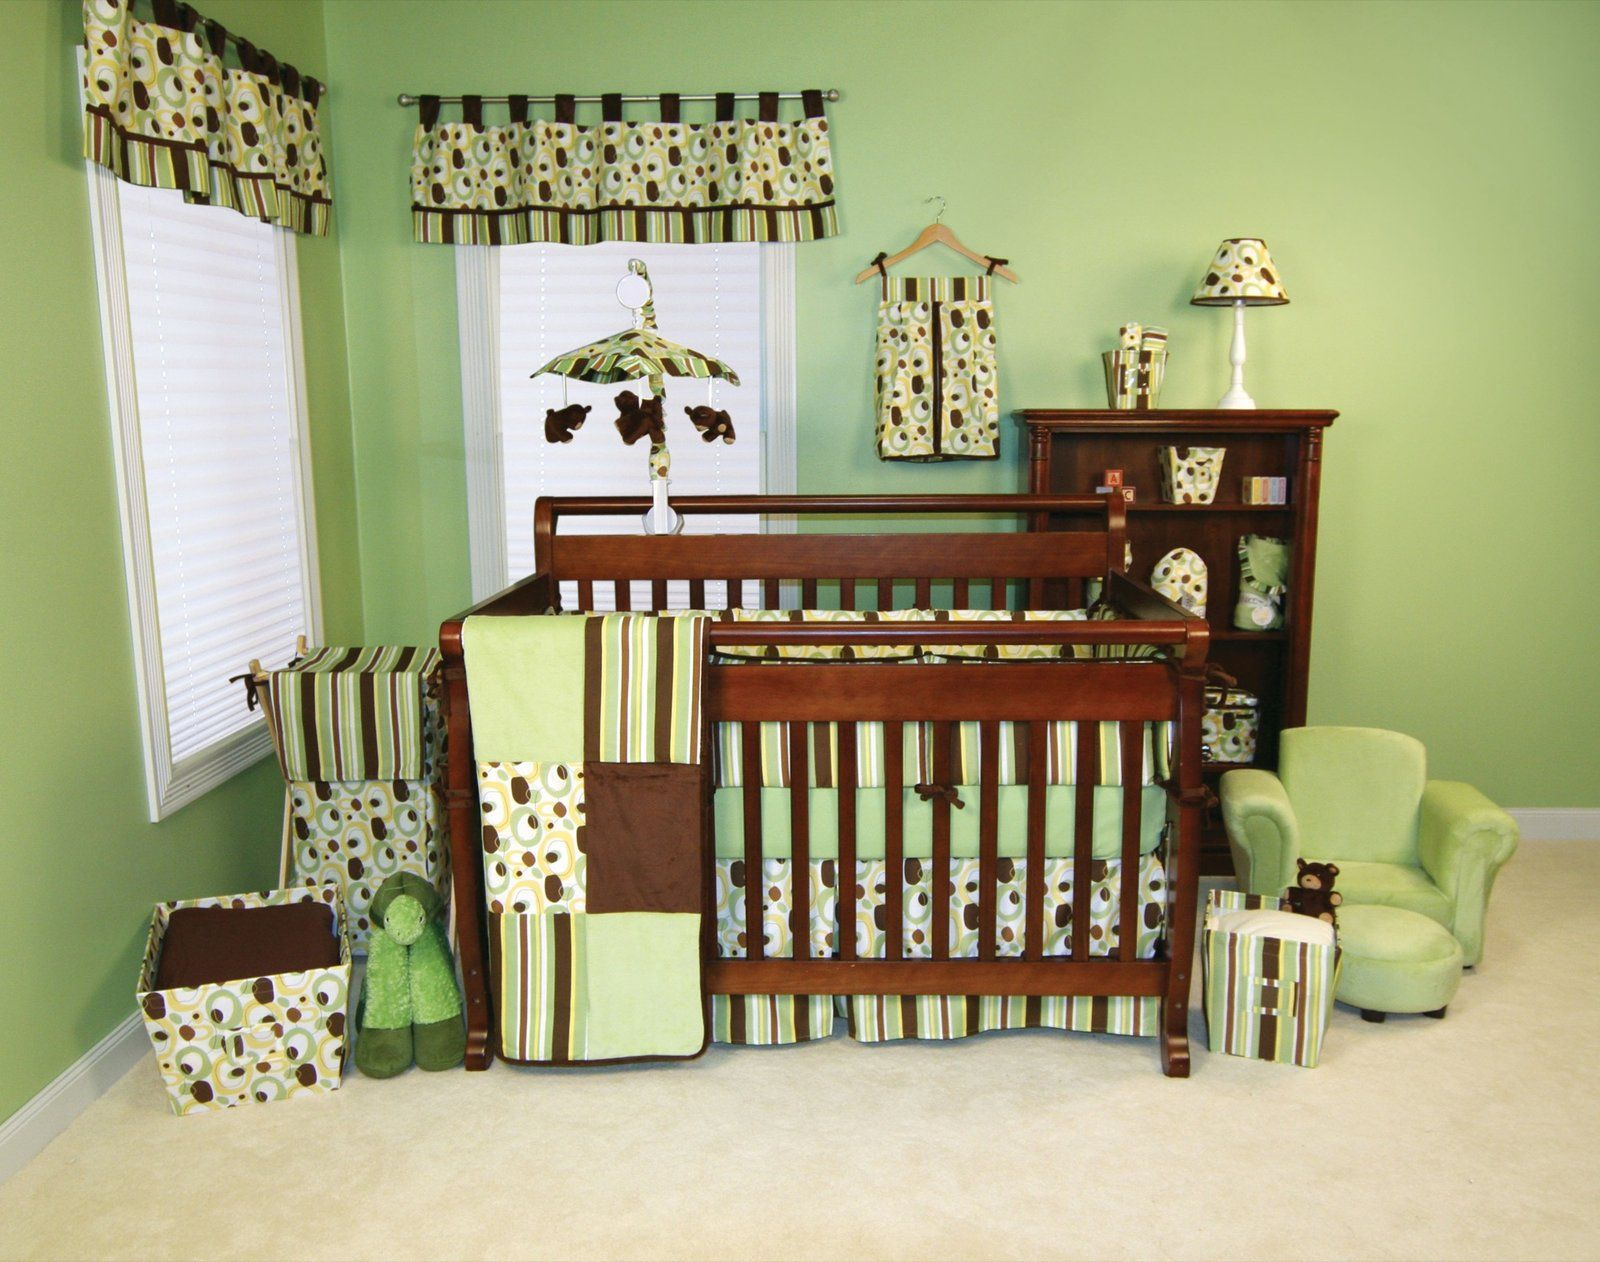 Themes for baby nurserys green theme baby room decor for your baby nursery ideas 1600x1262